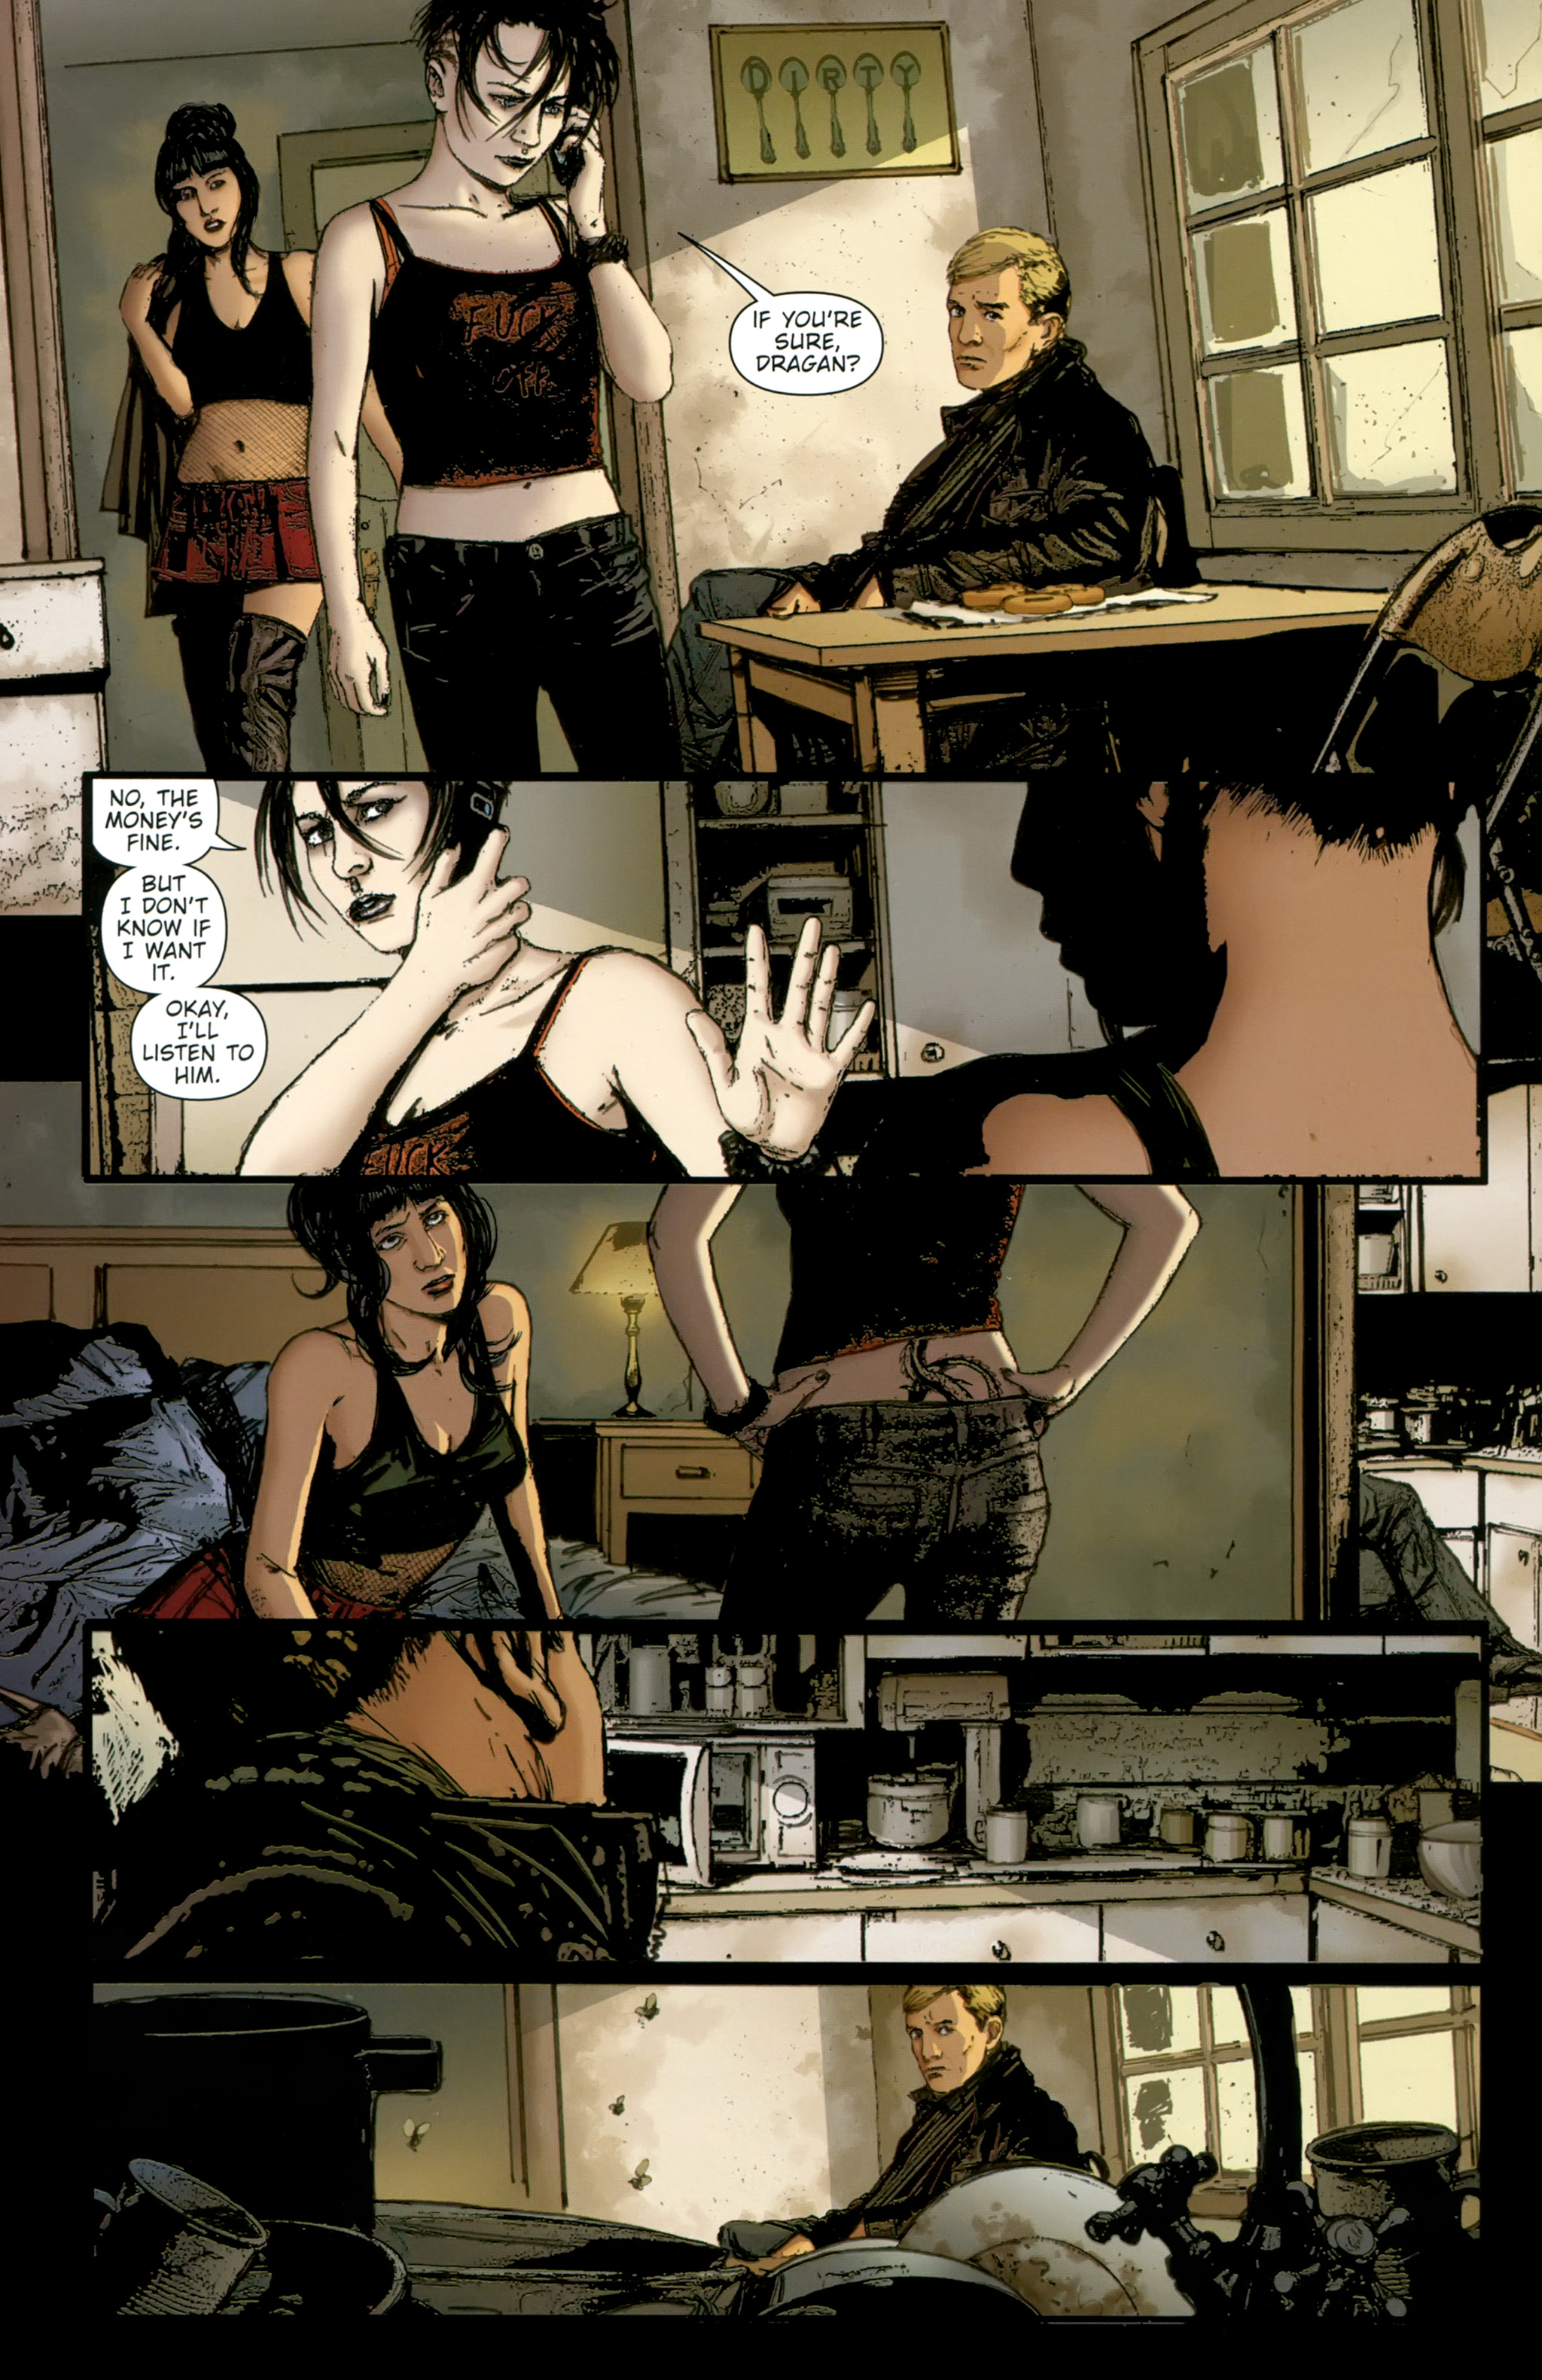 Read online The Girl With the Dragon Tattoo comic -  Issue # TPB 2 - 48